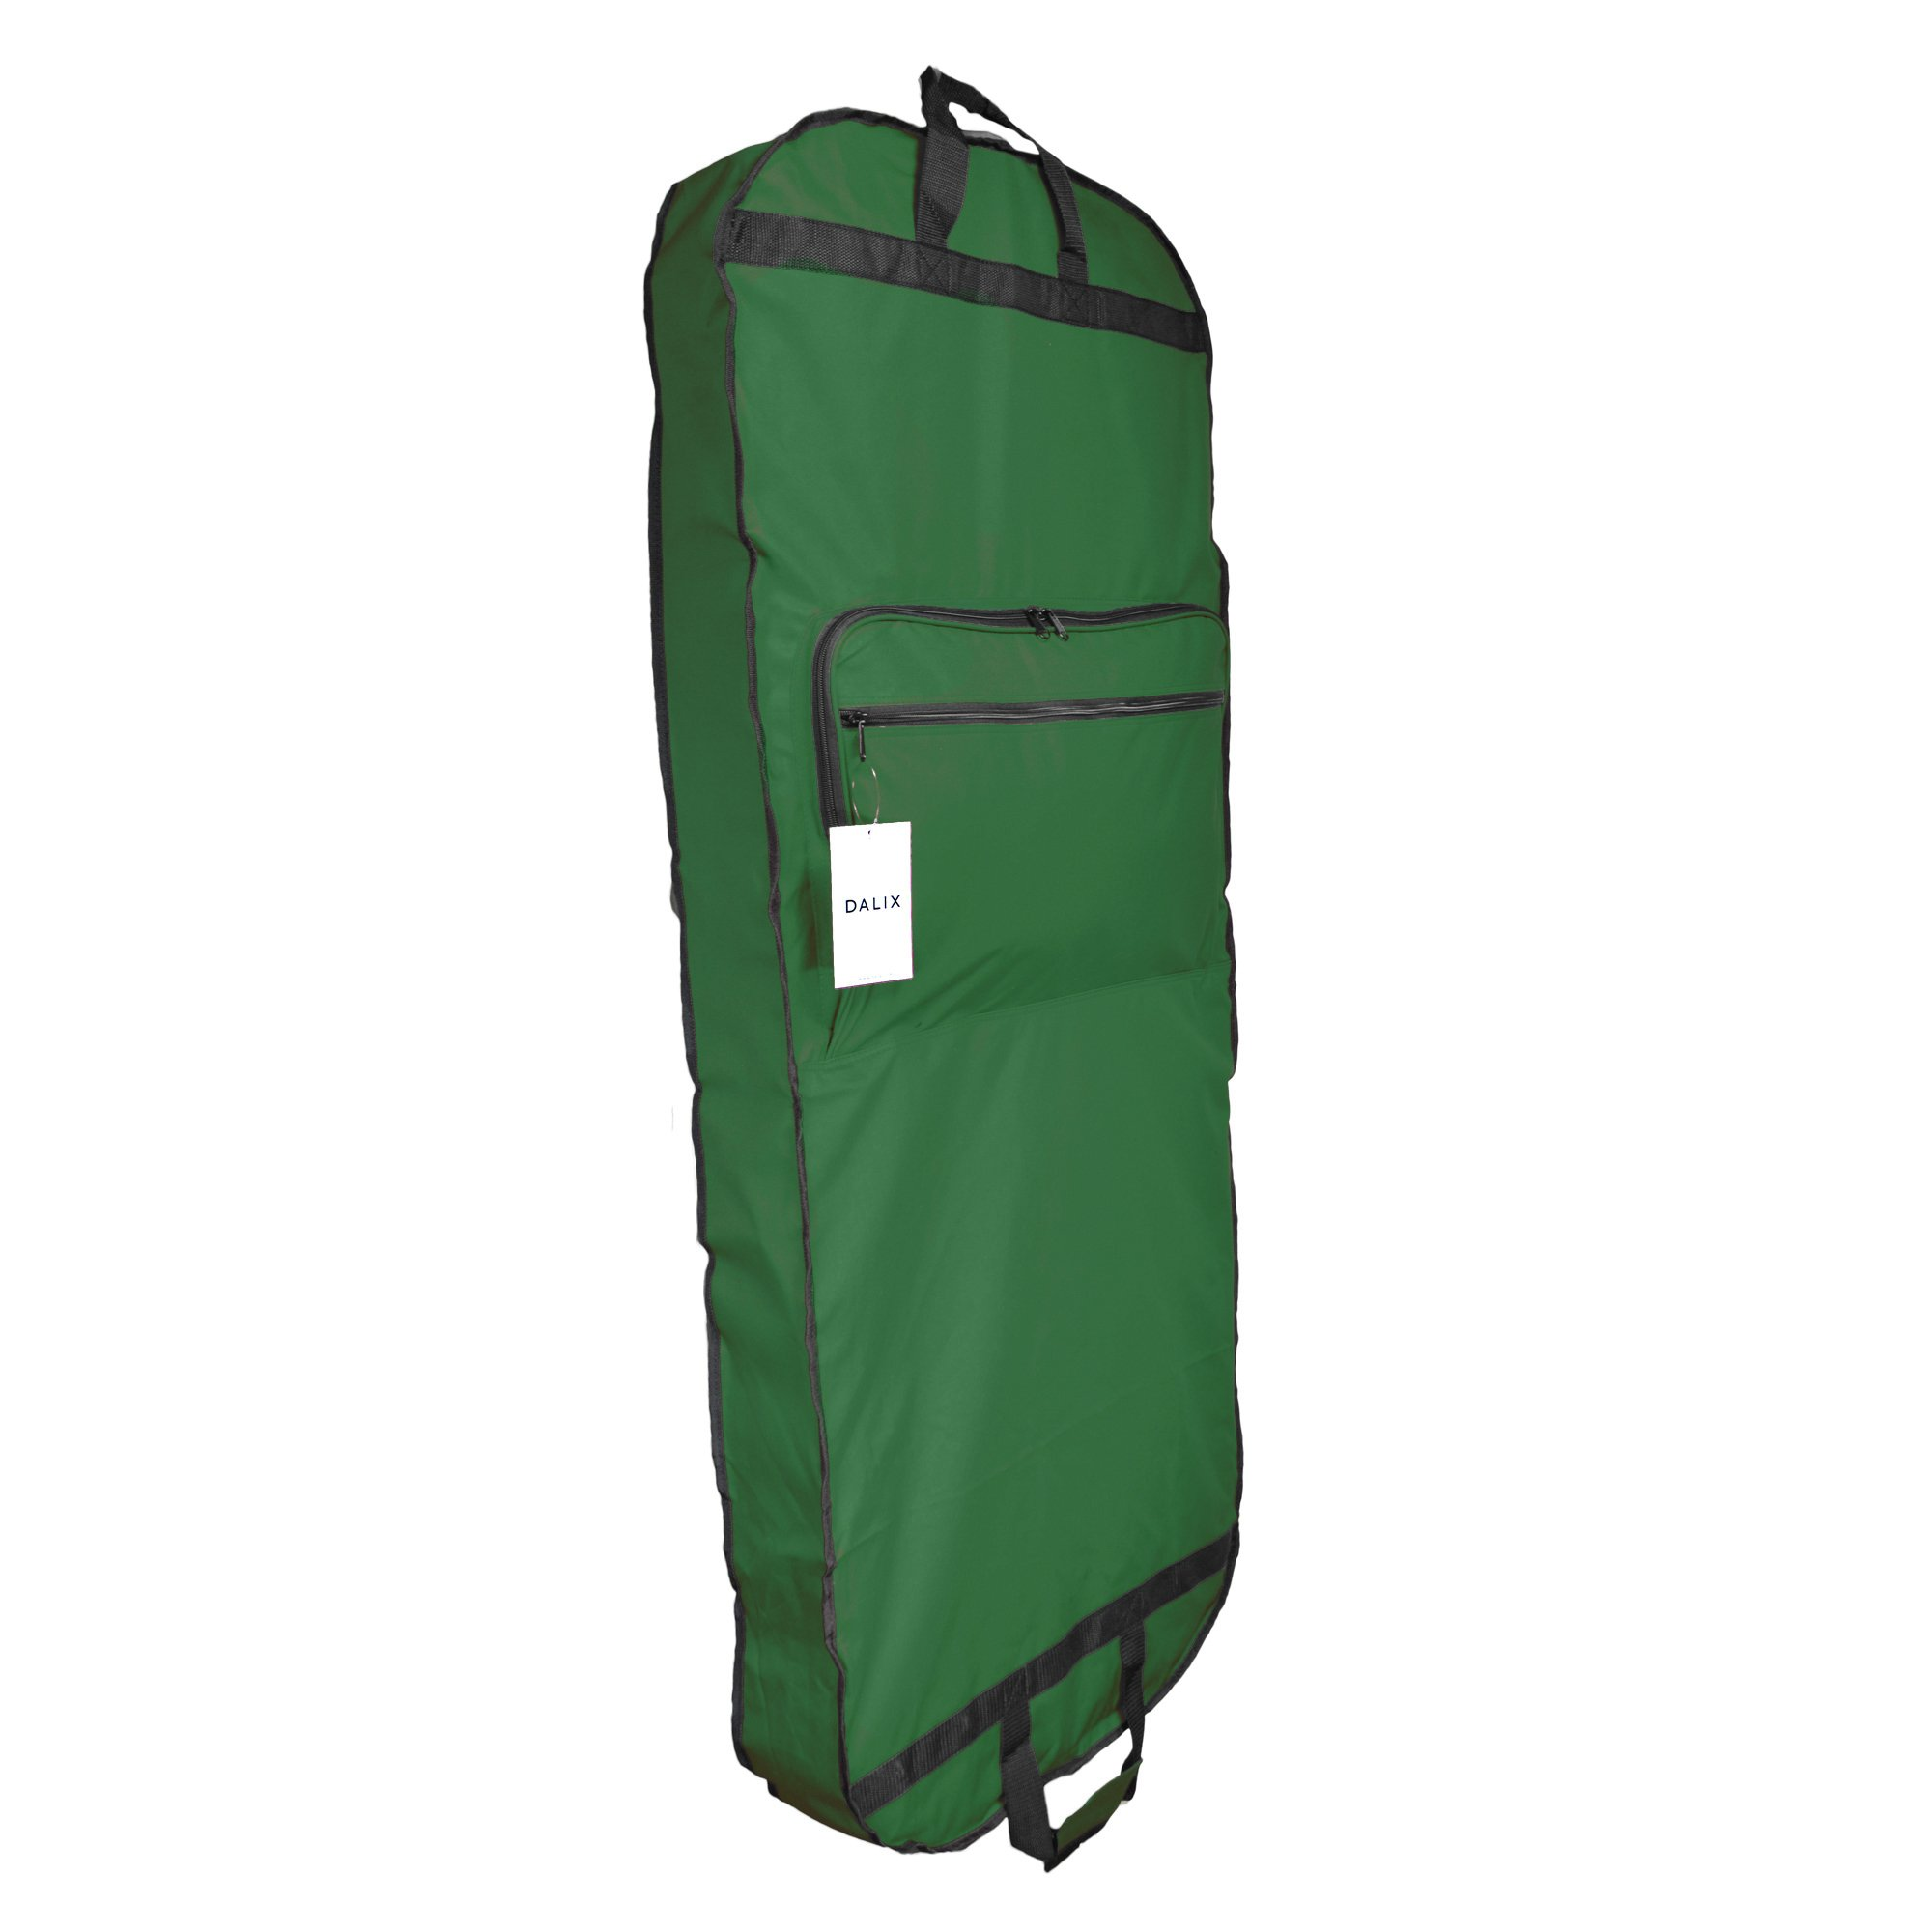 DALIX 60'' Professional Garment Bag Cover for Suits Pants & Gowns Dresses (Foldable) (Dark Green)